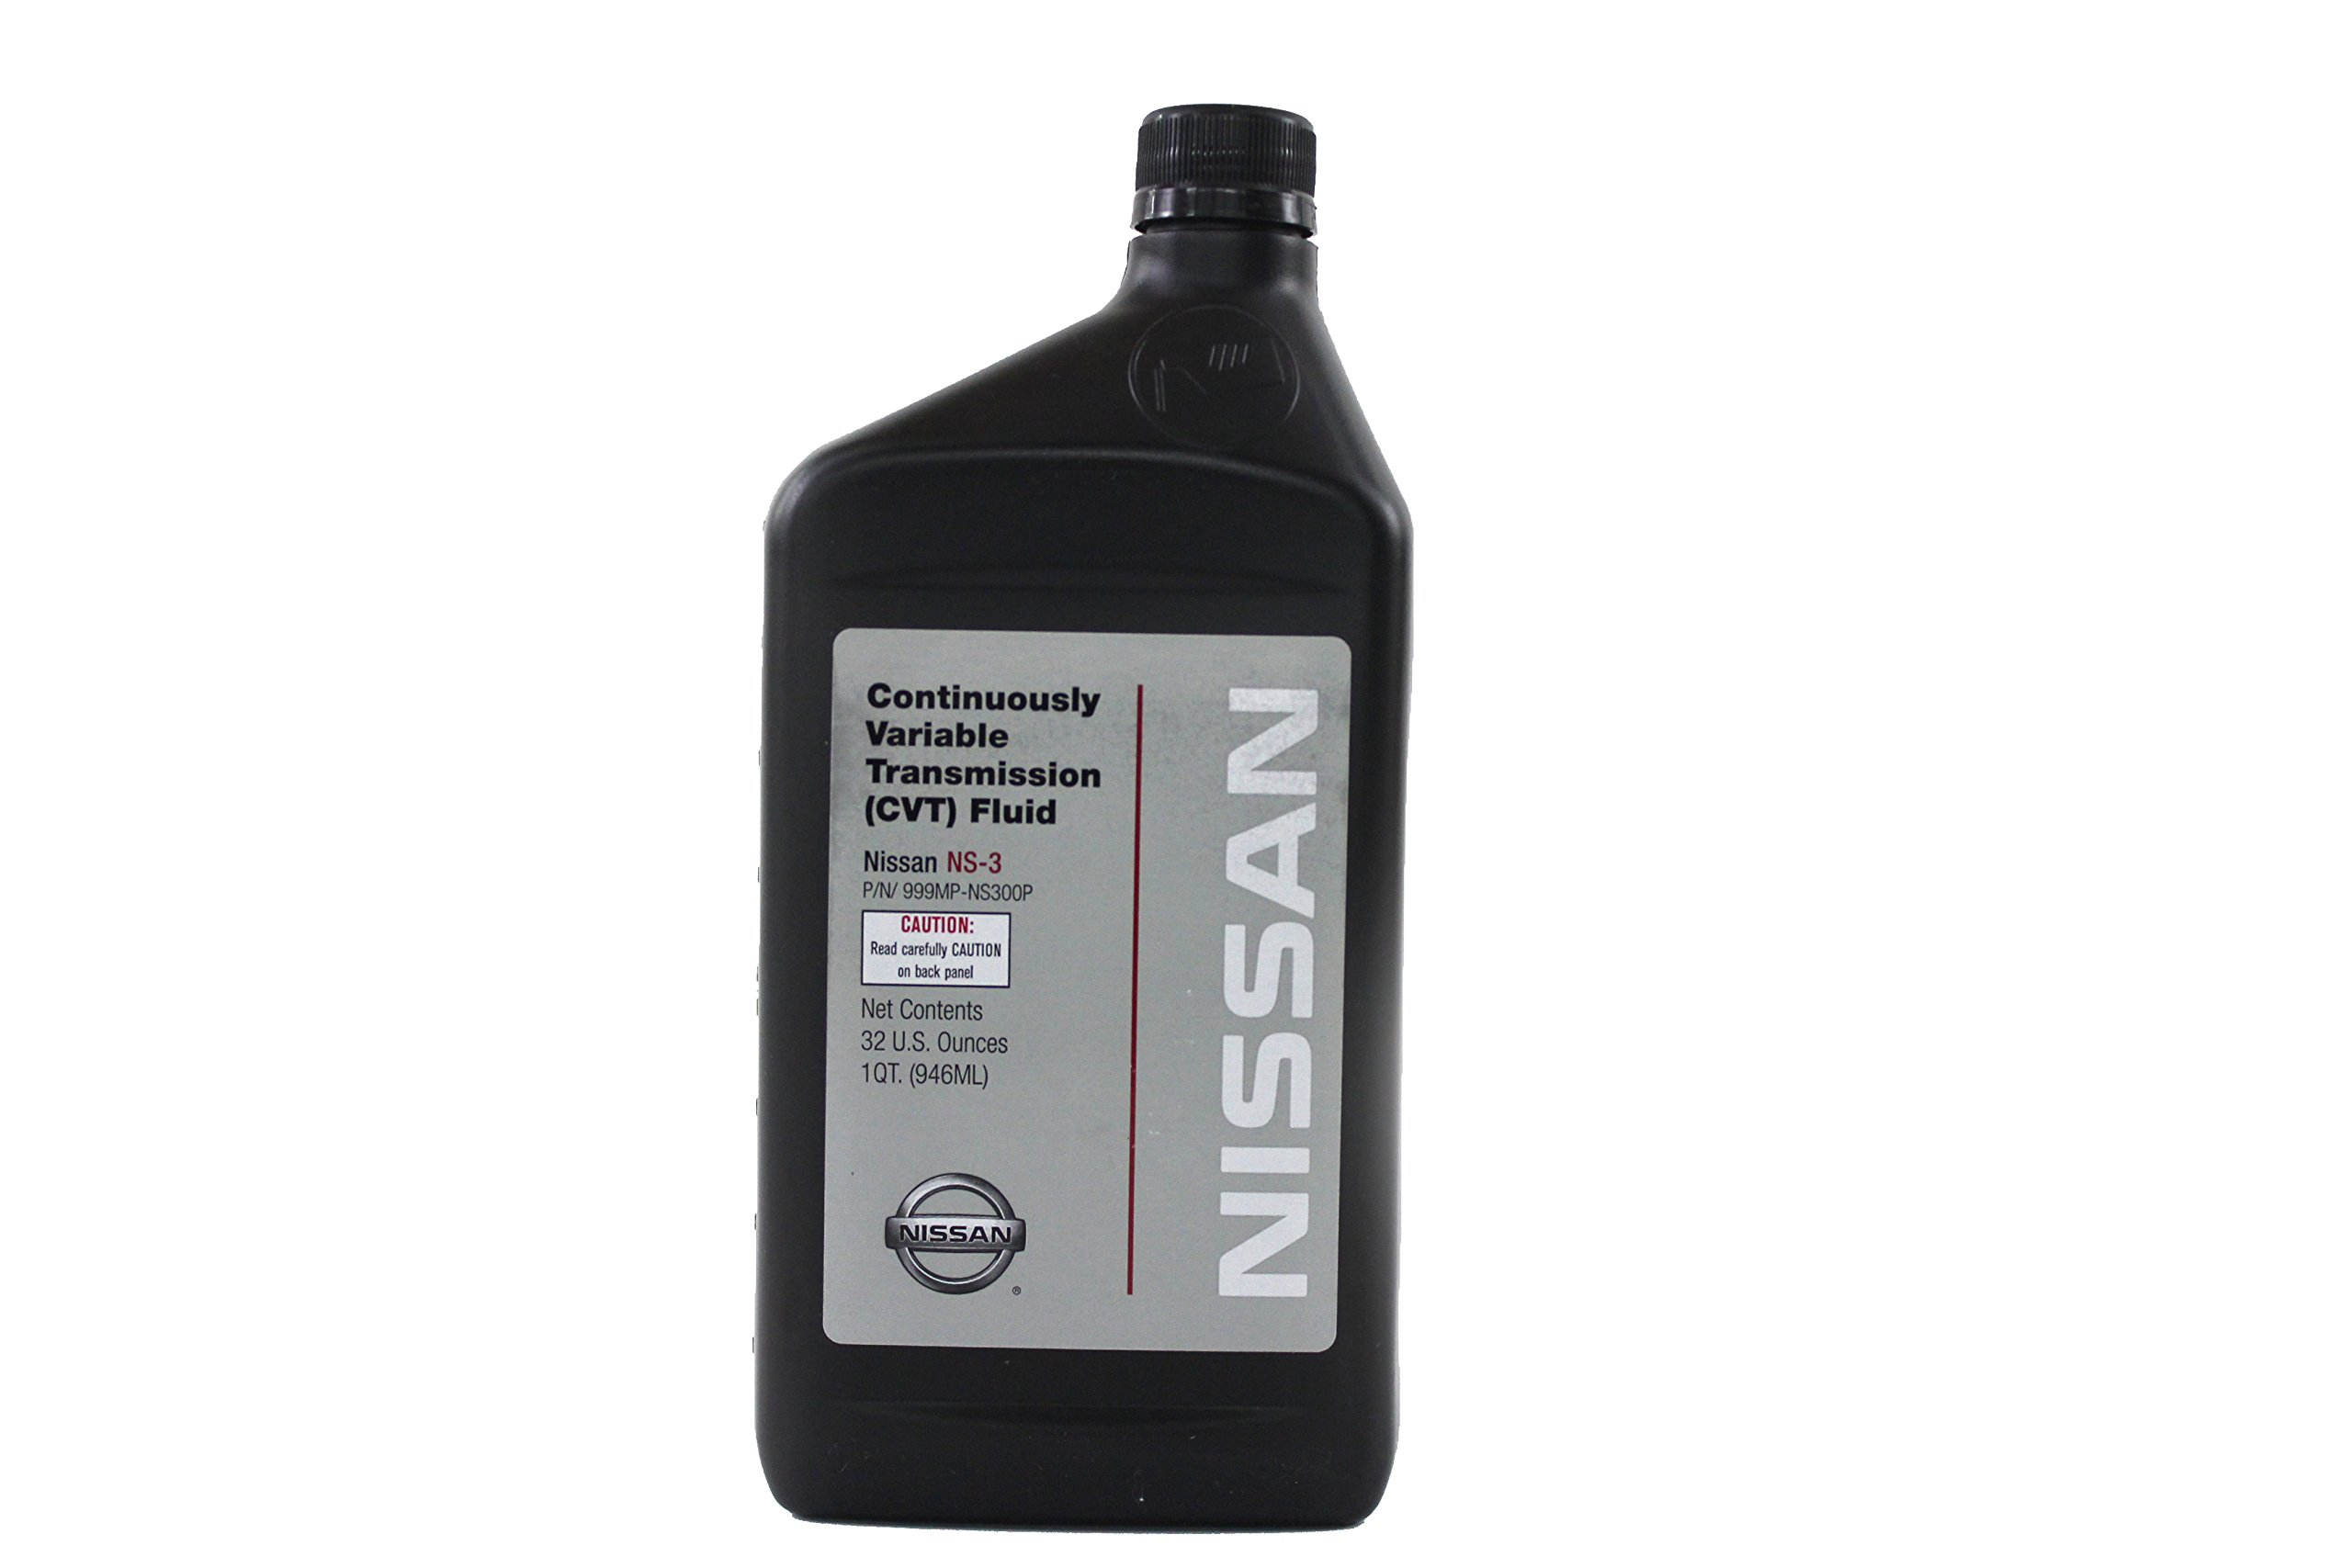 Nissan Genuine Fluid (999MP-NS300P) NS-3 Continuously Variable Transmission Fluid - 1 Quart